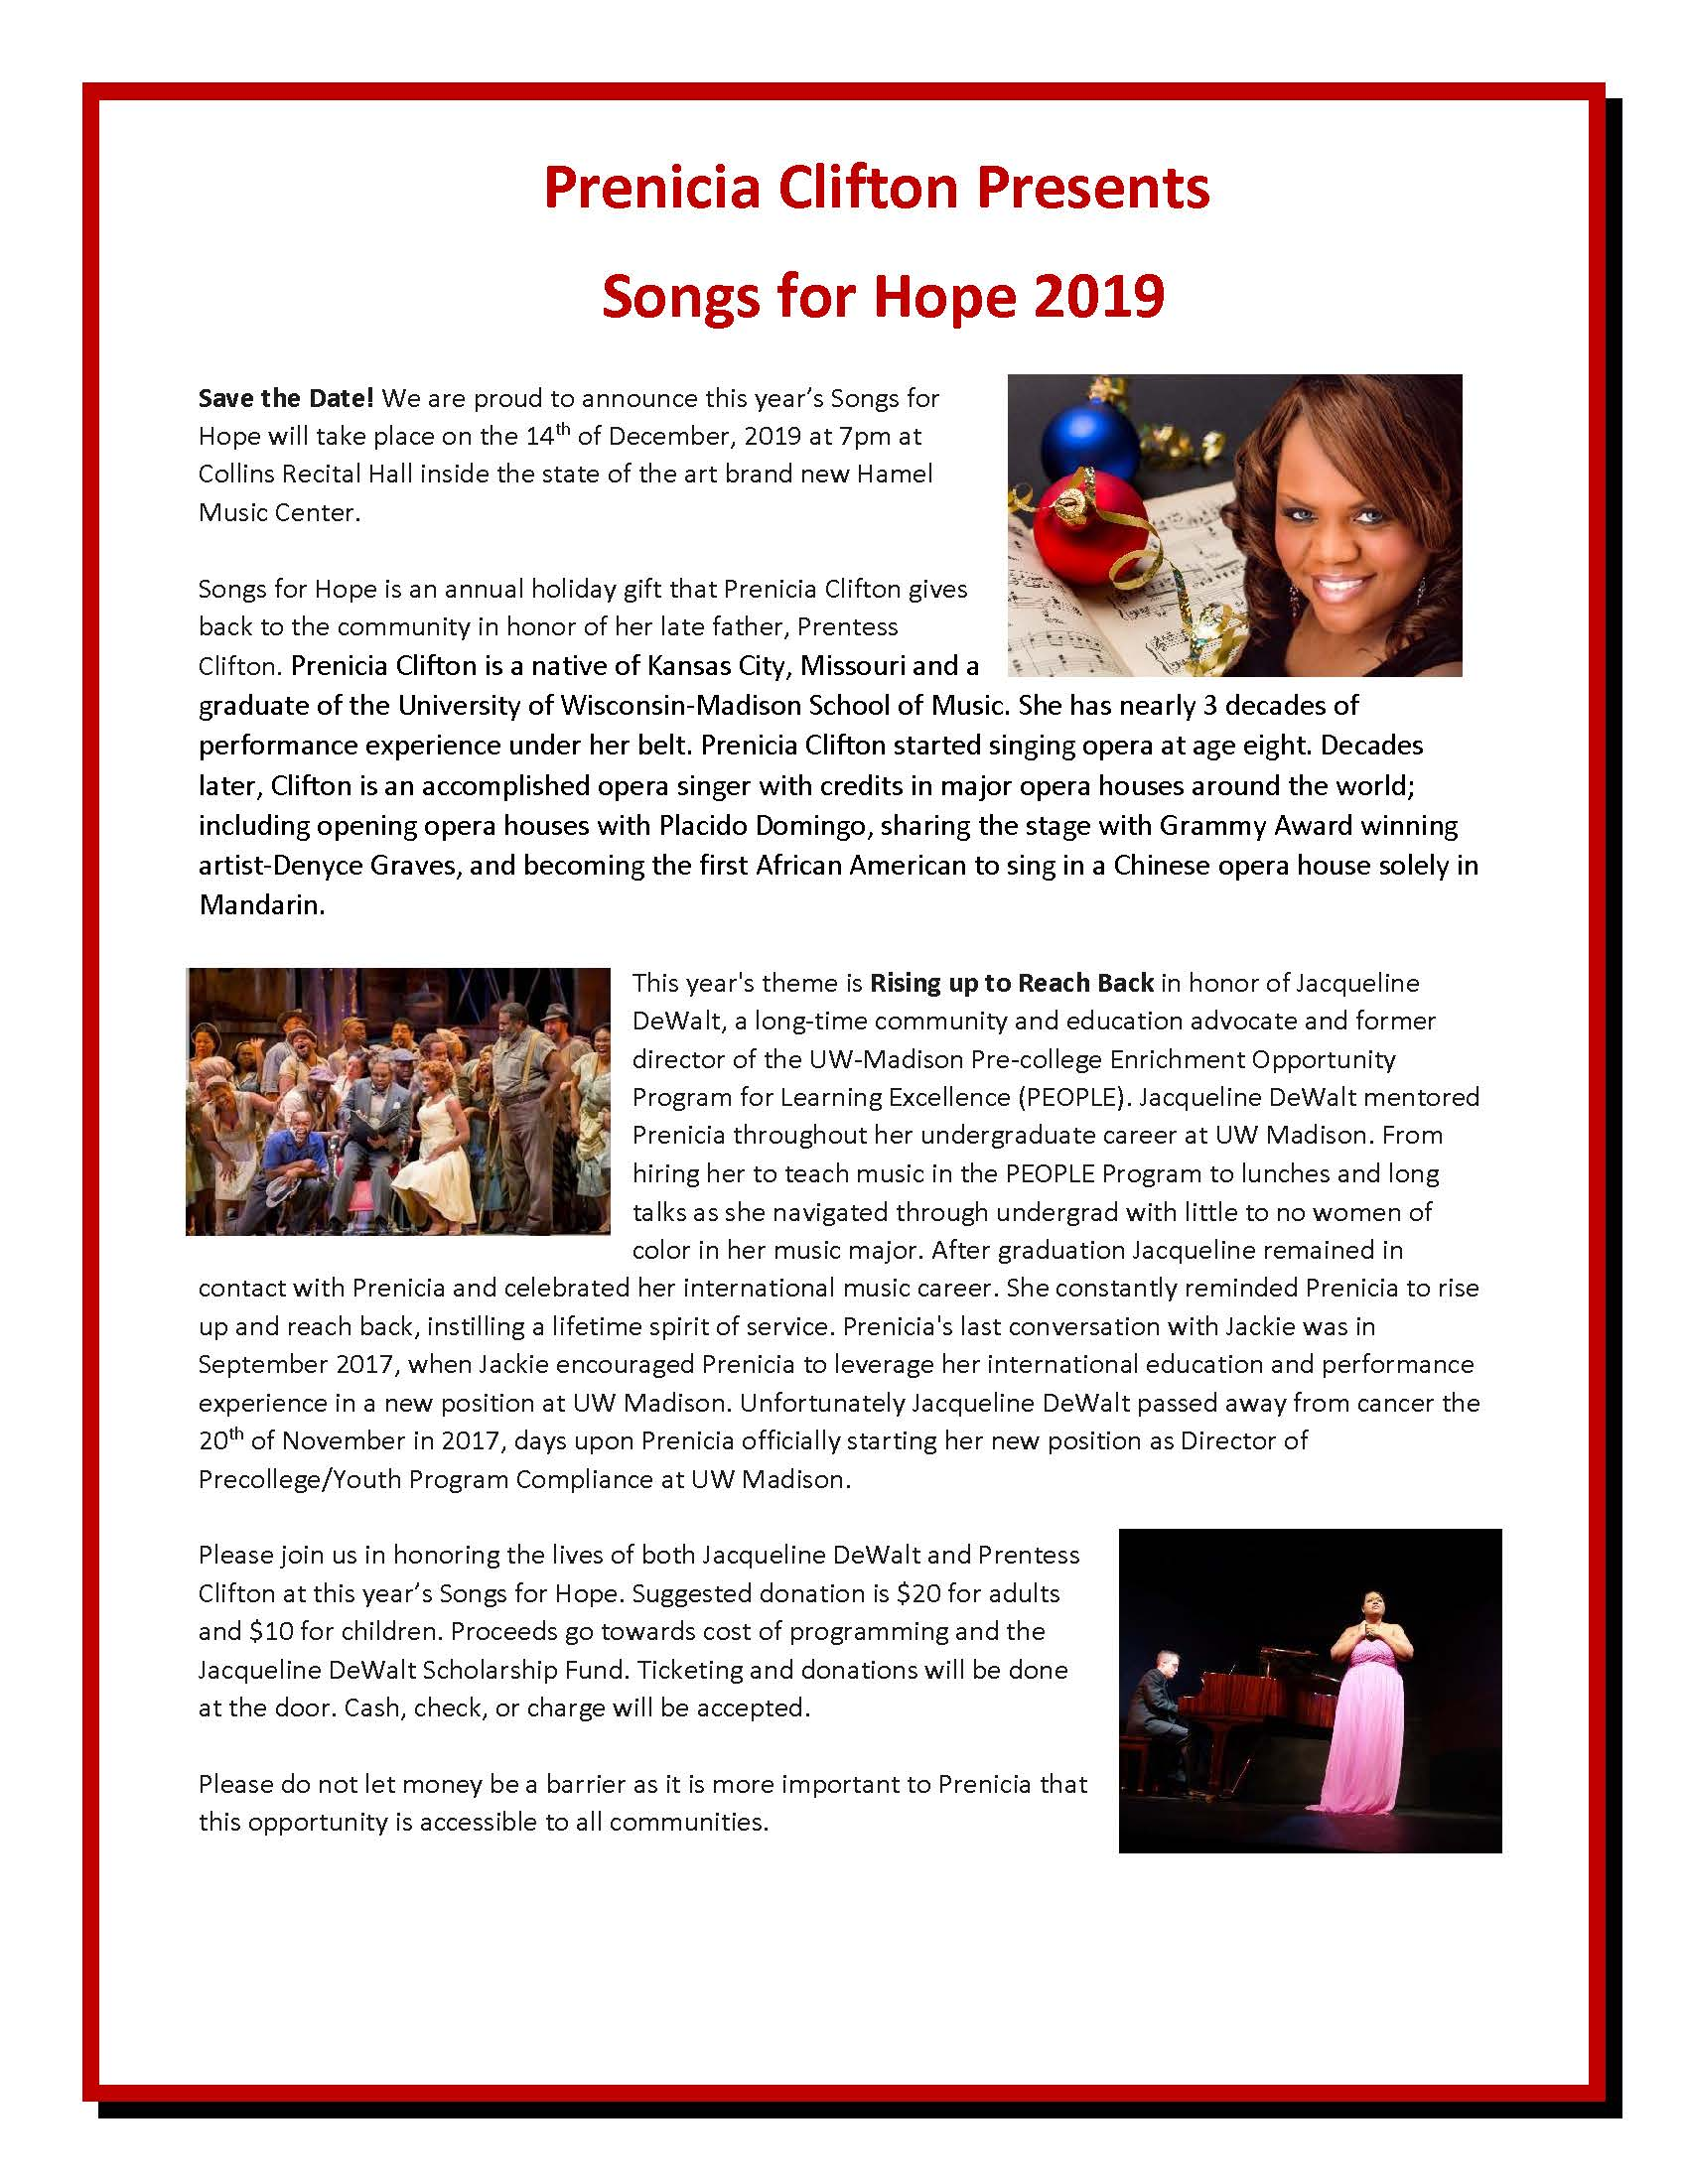 Songs of Hope poster